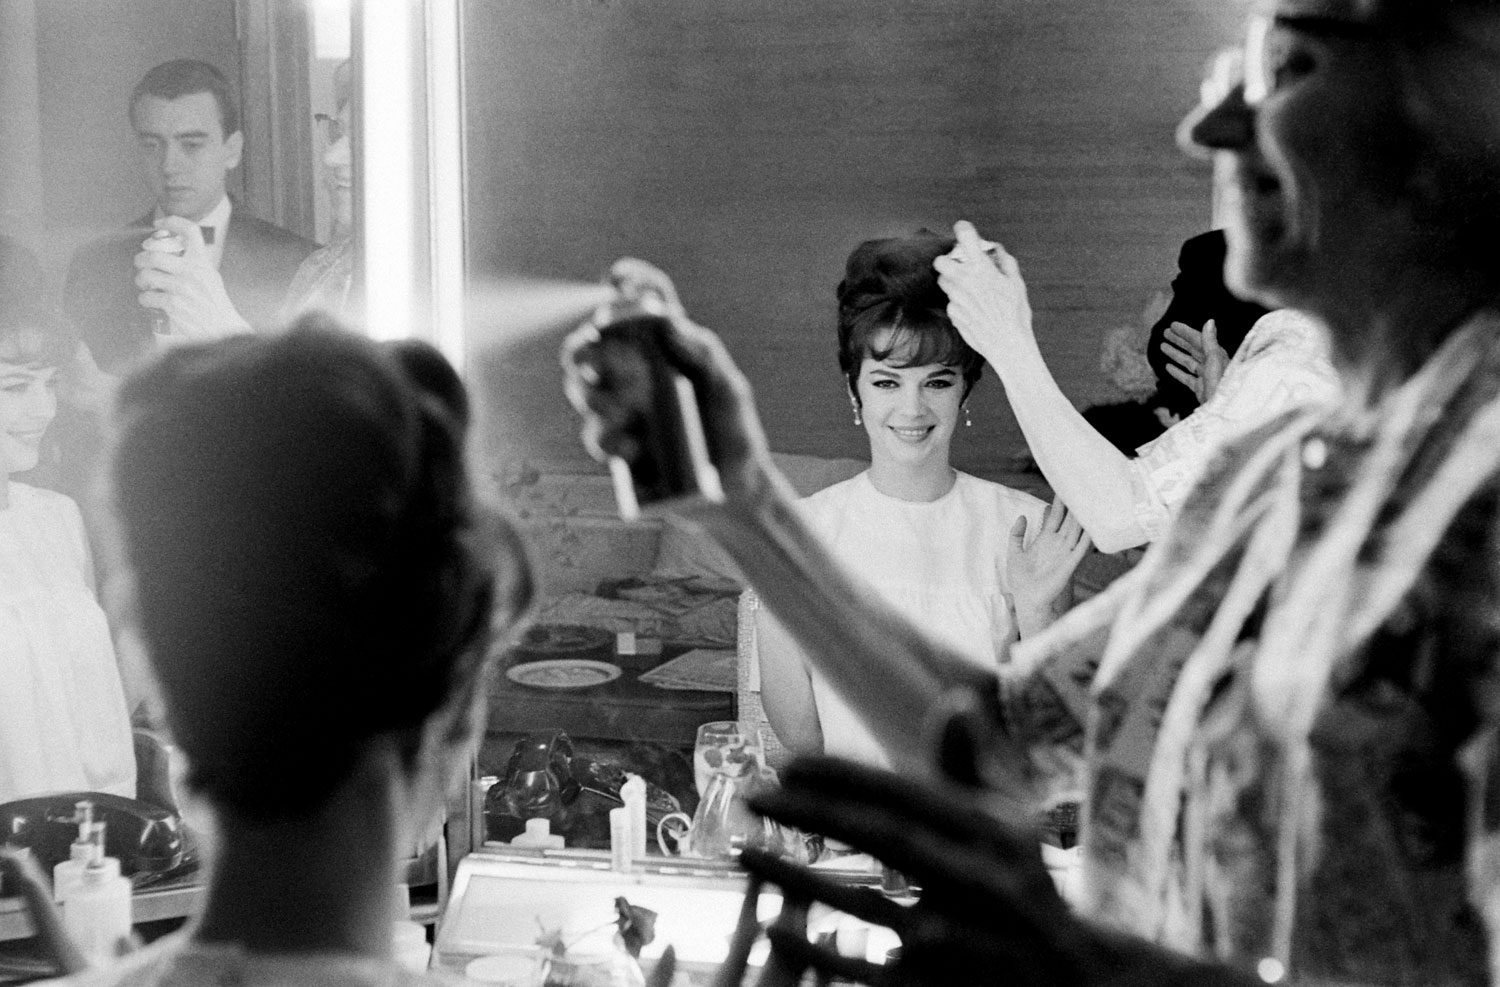 Natalie Wood gets the final touches on her updo with hair spray before the Academy Awards in April 1962.